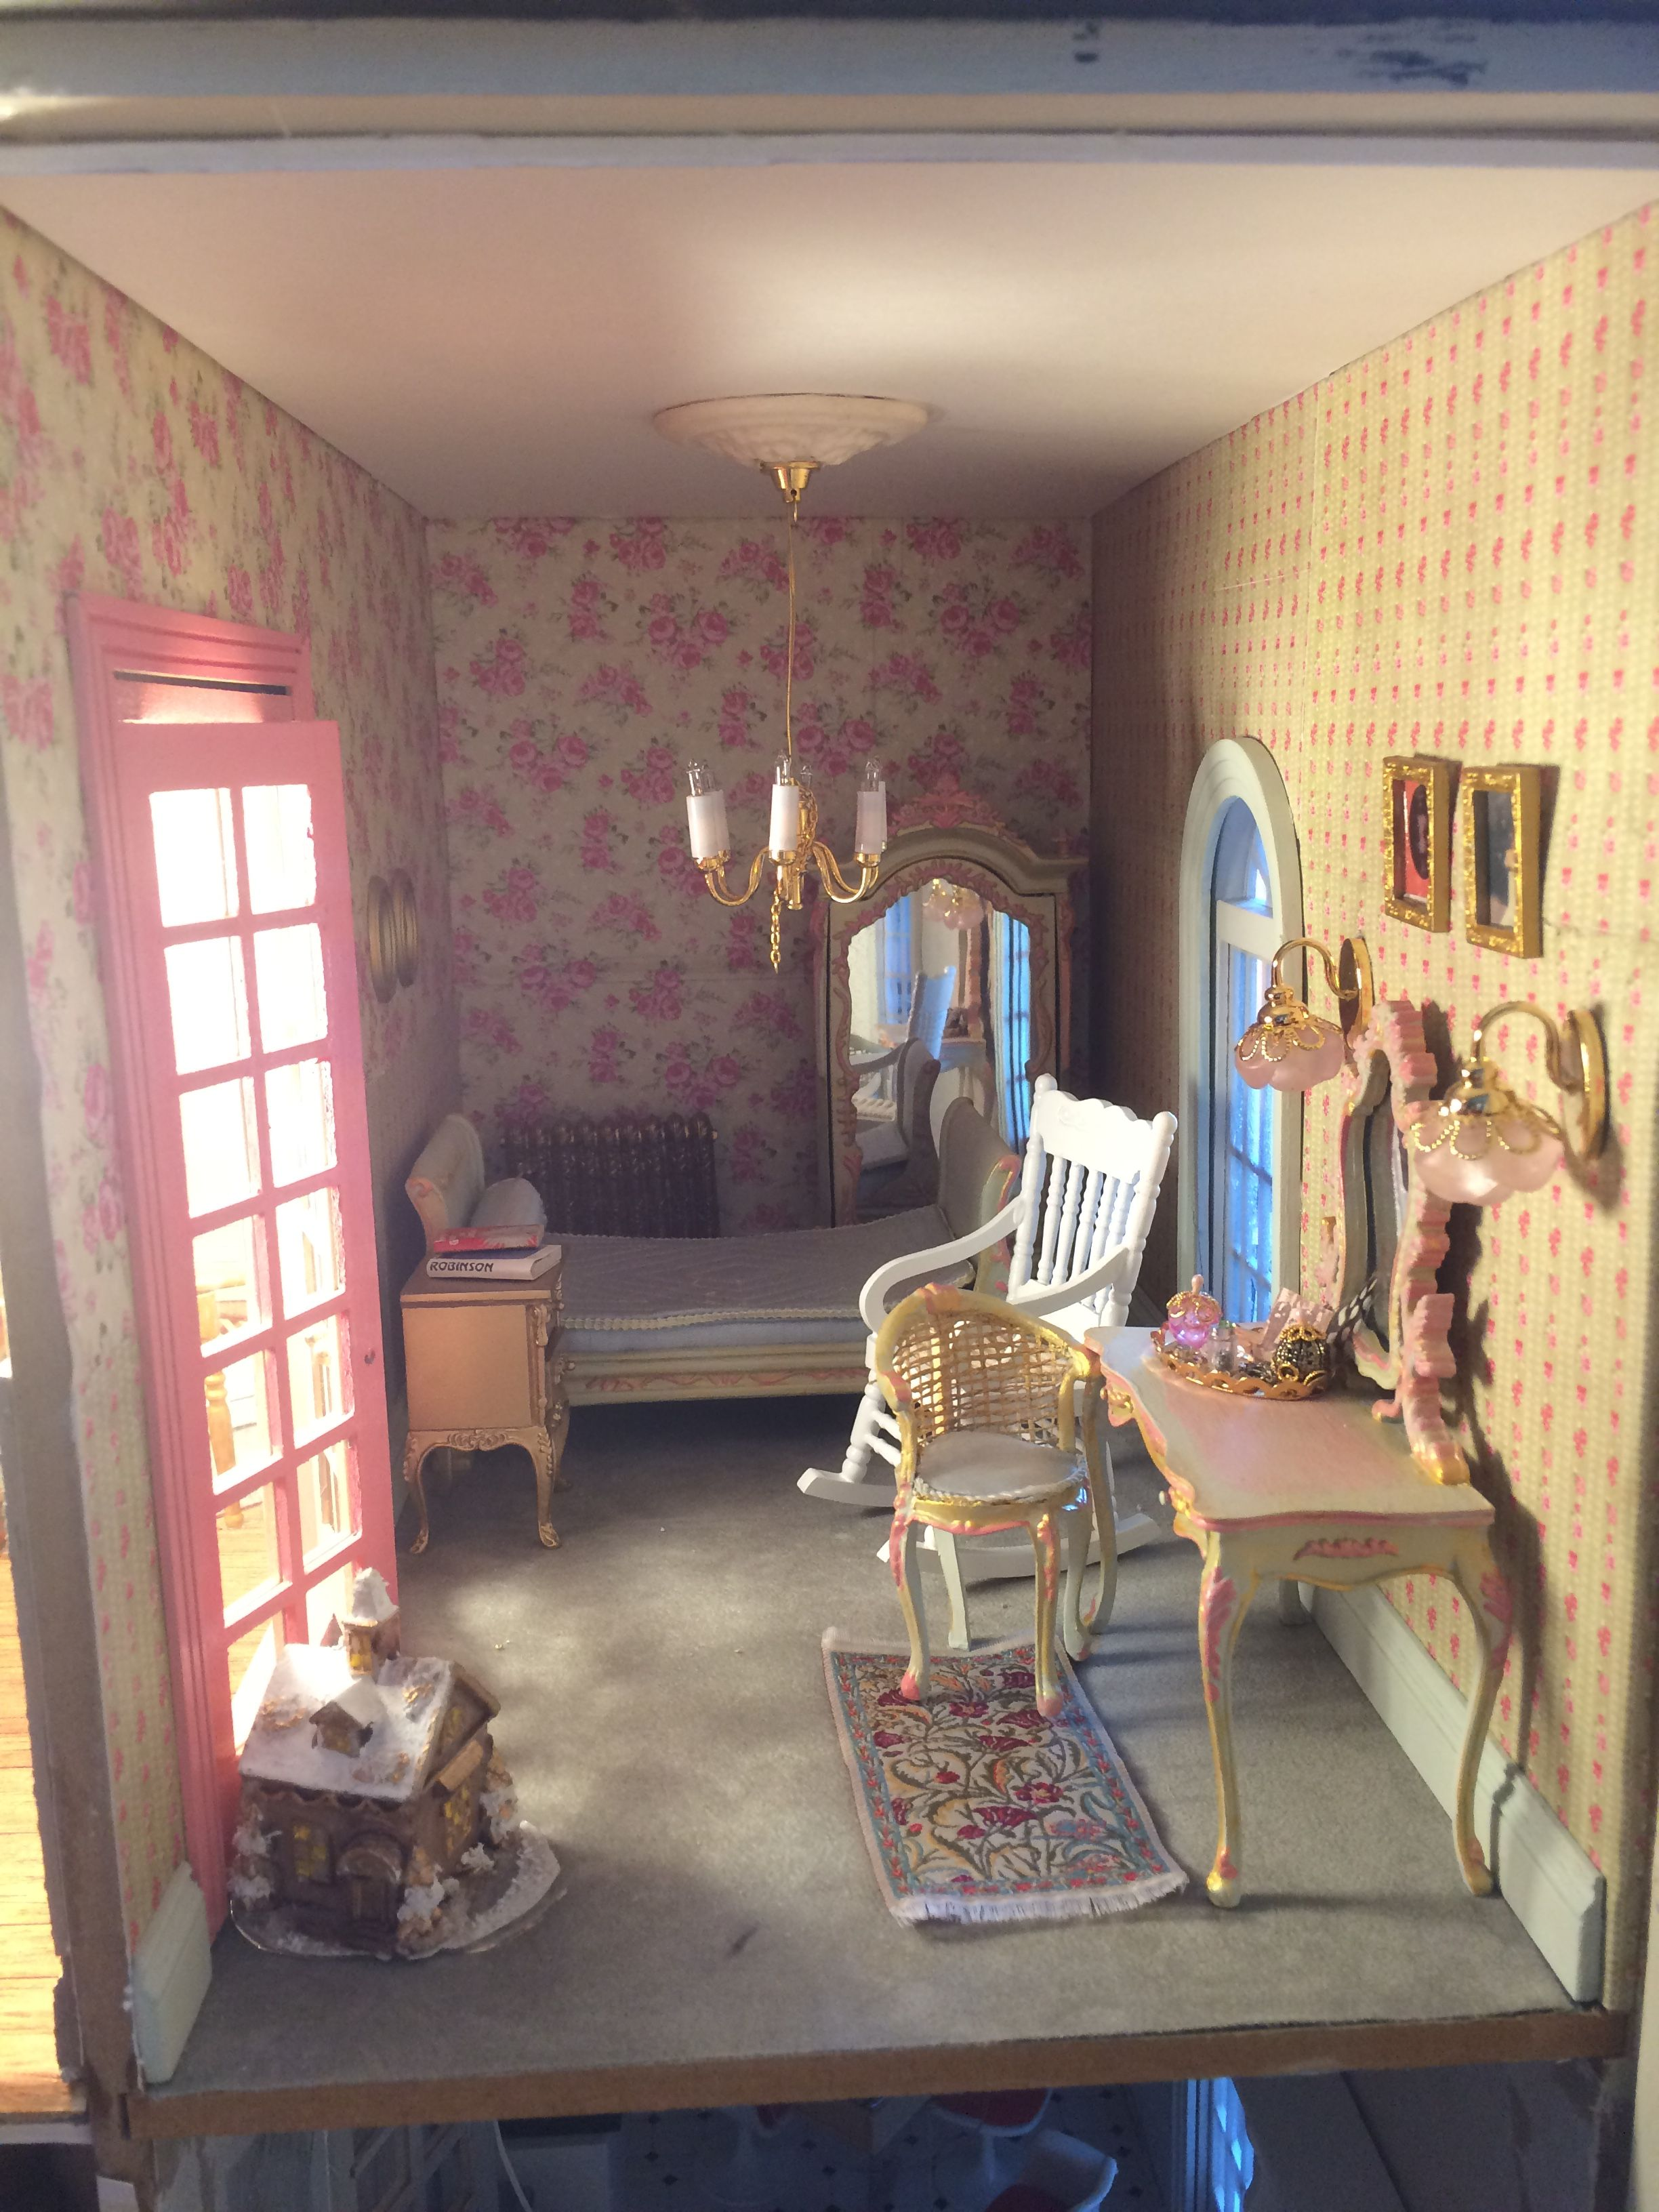 Pin By Christy Whitaker On Dollhouse Miniatures - Pinterest -